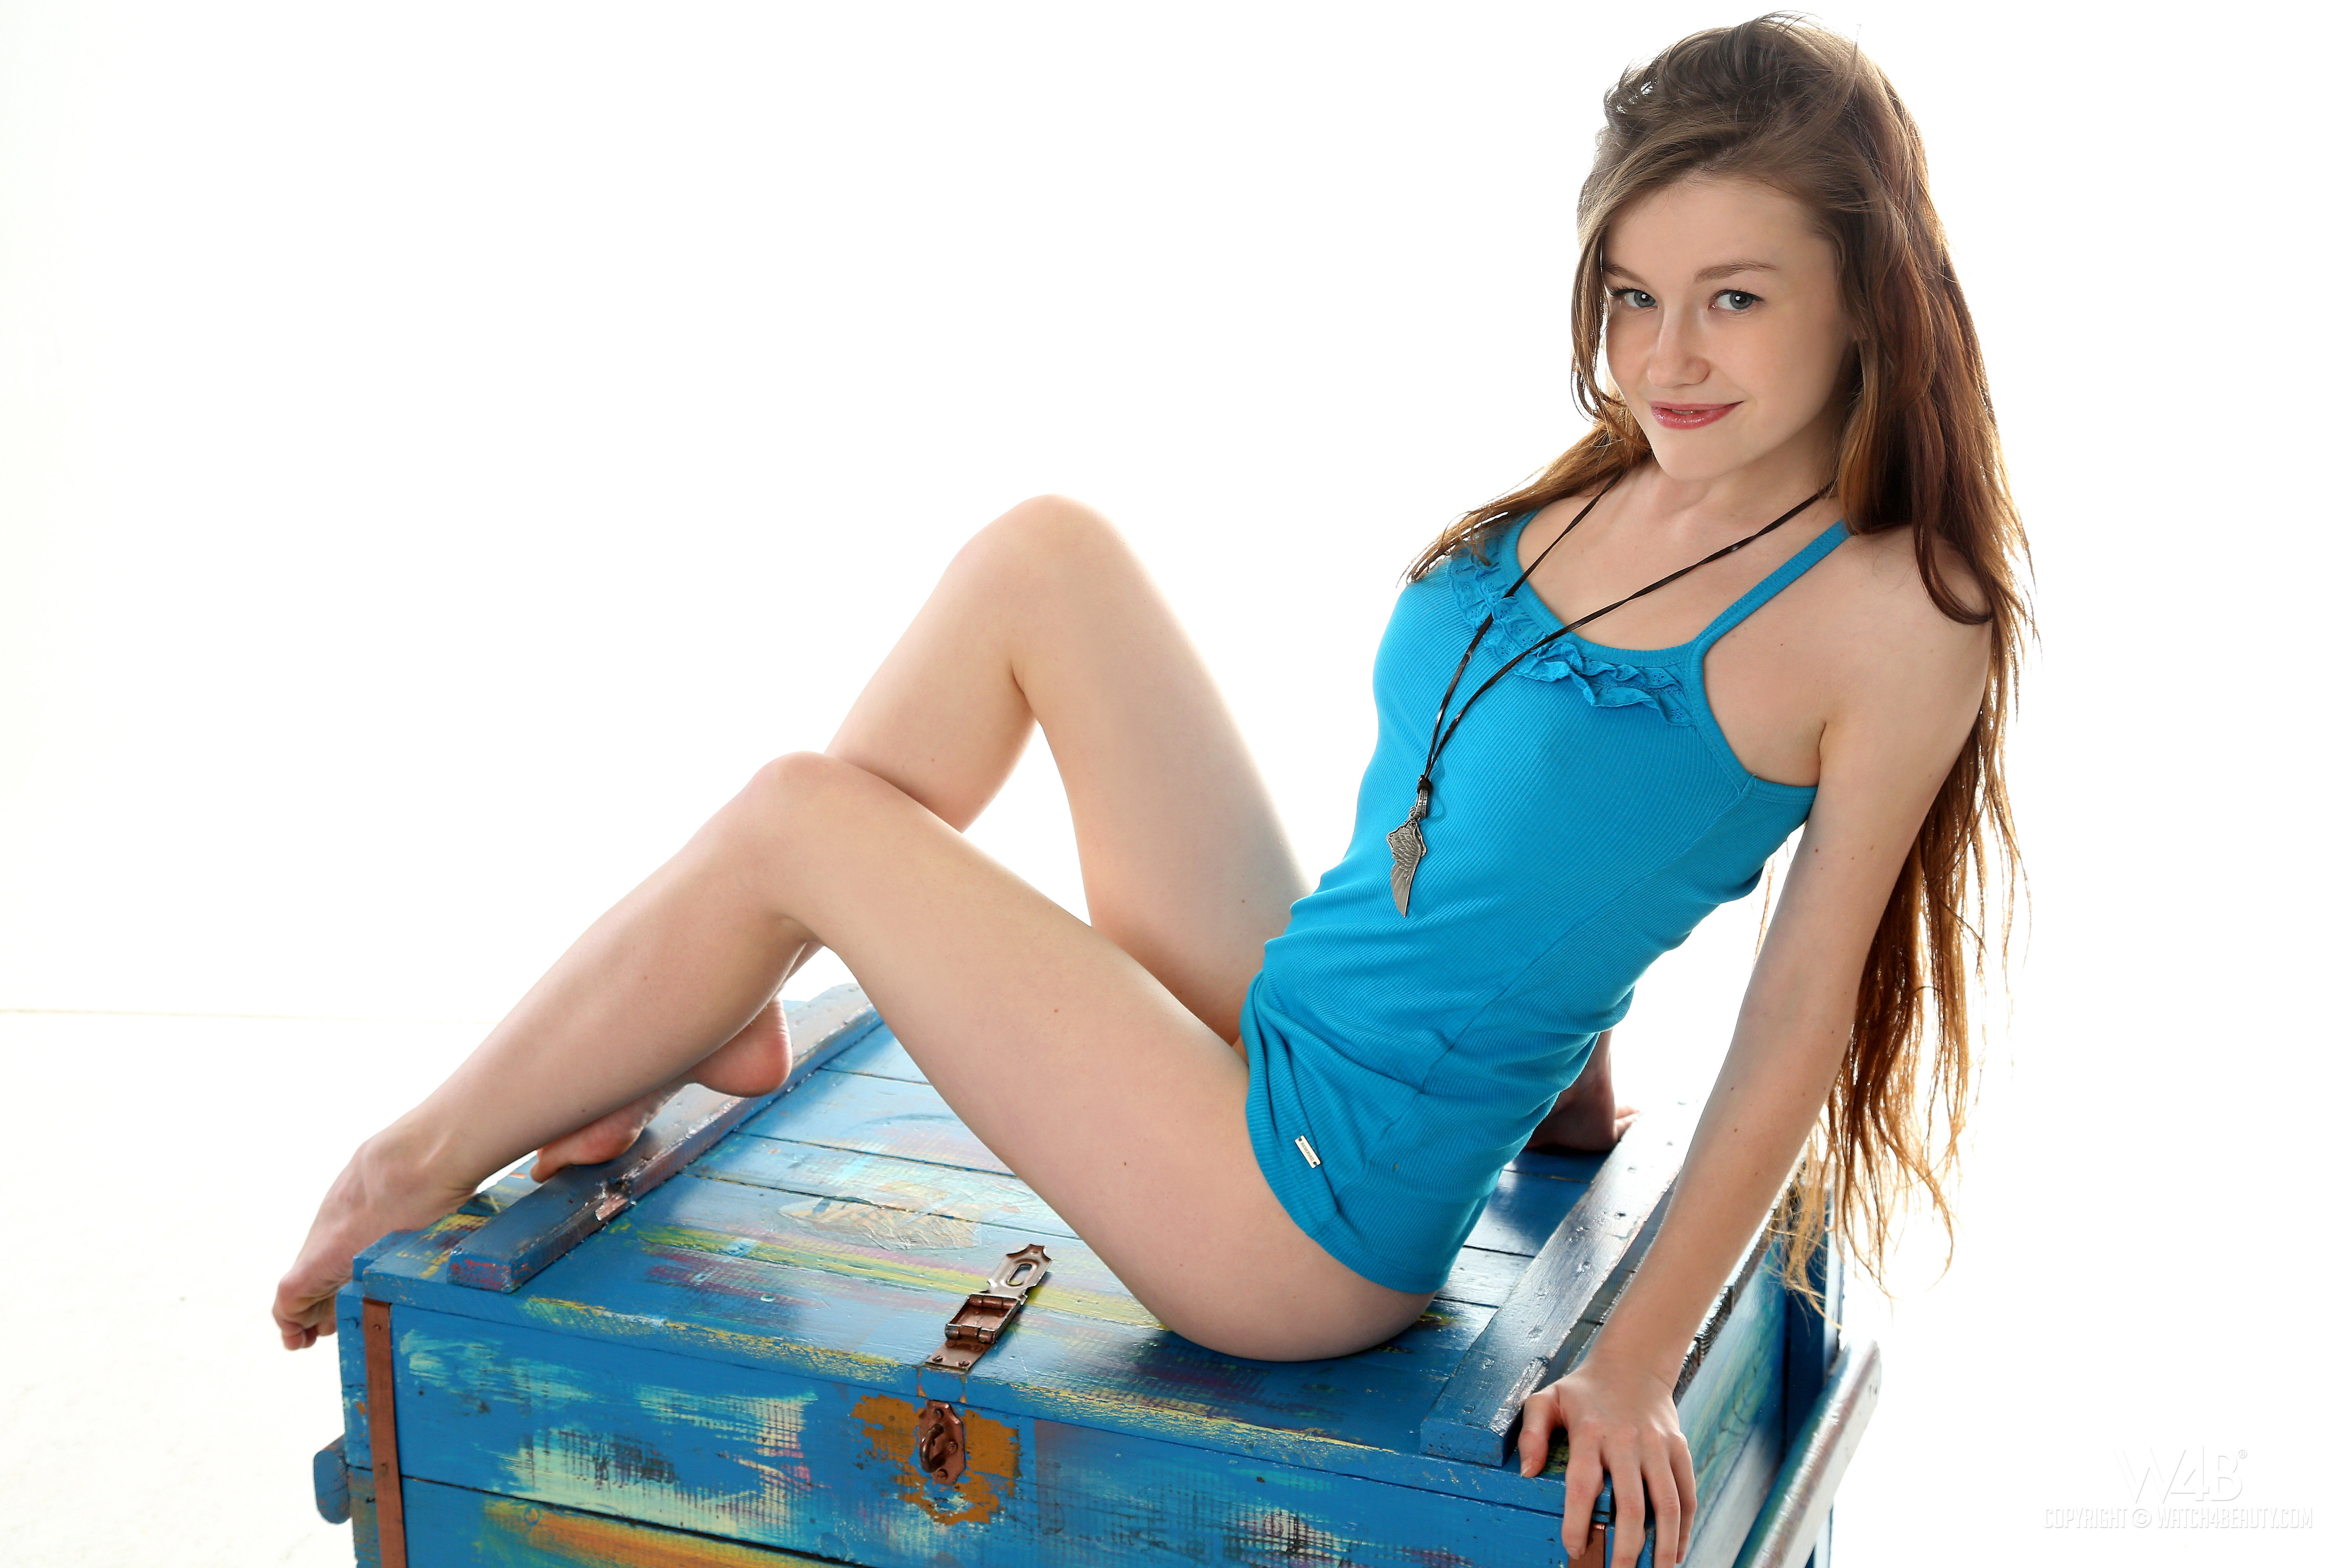 Download Photo 5760x3840, Emily Bloom, Emily, Anne T